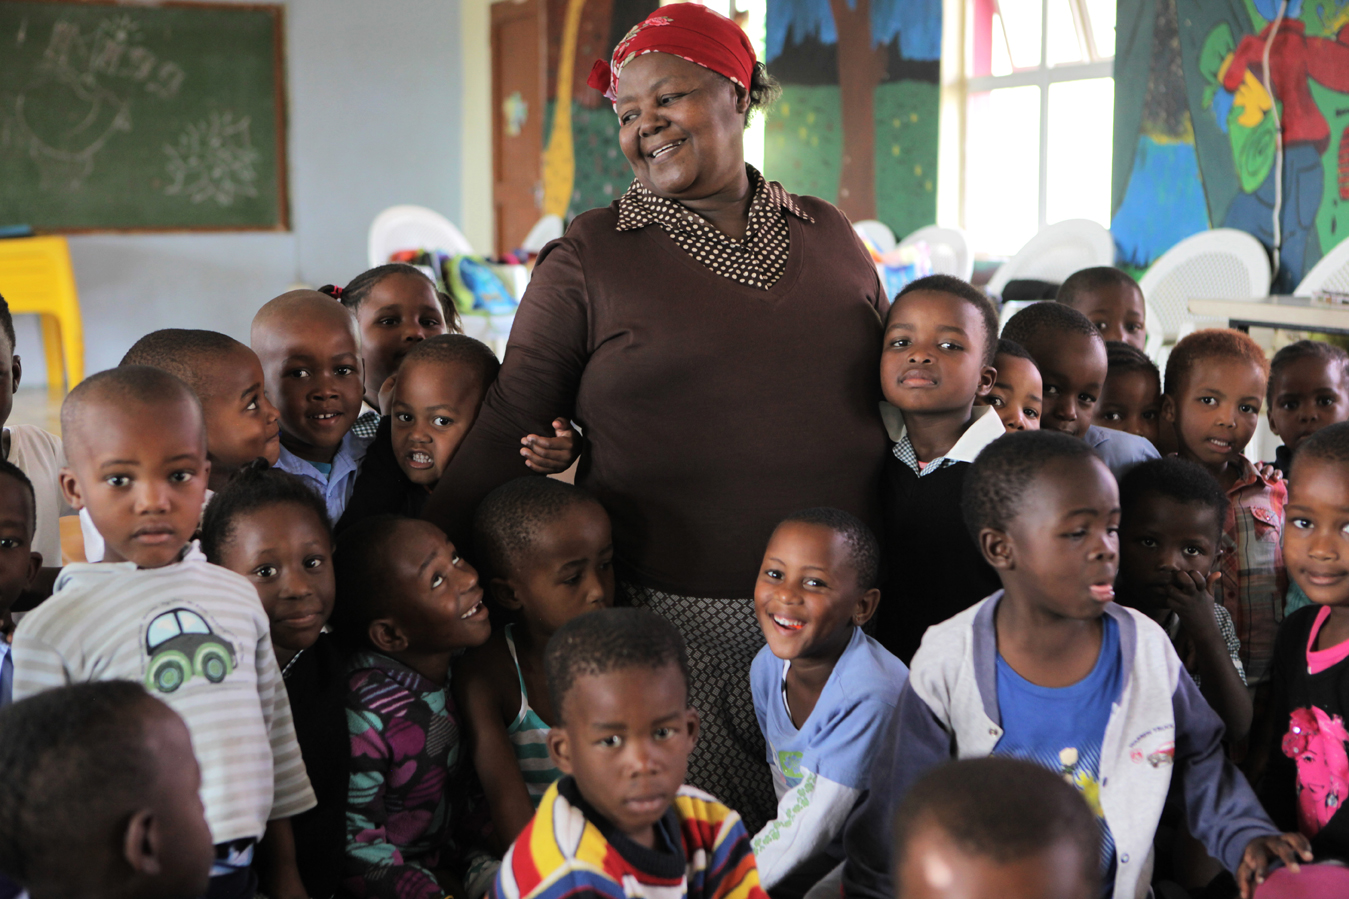 Principal Ethel Ngcobo, with her students at the Zamani ECD Centre on the outskirts of Durban in the eThekwini district. Ethel first opened as a crèche in 1995, responding to the need for children to be cared for while their parents were at work. After years of dedication and support from ABSA, the Outreach Foundation and Save the Children, she built a proper ECD centre. Over 92% of preschool children in KwaZulu-Natal attend unregistered ECD centres (crèches). Save the Children, operating in KZN for over 50 years, recognised the need to support crèches in the area with better management skills and access to learning materials, as well as running the crèche forums and supporting crèches with registration to become ECD centres.